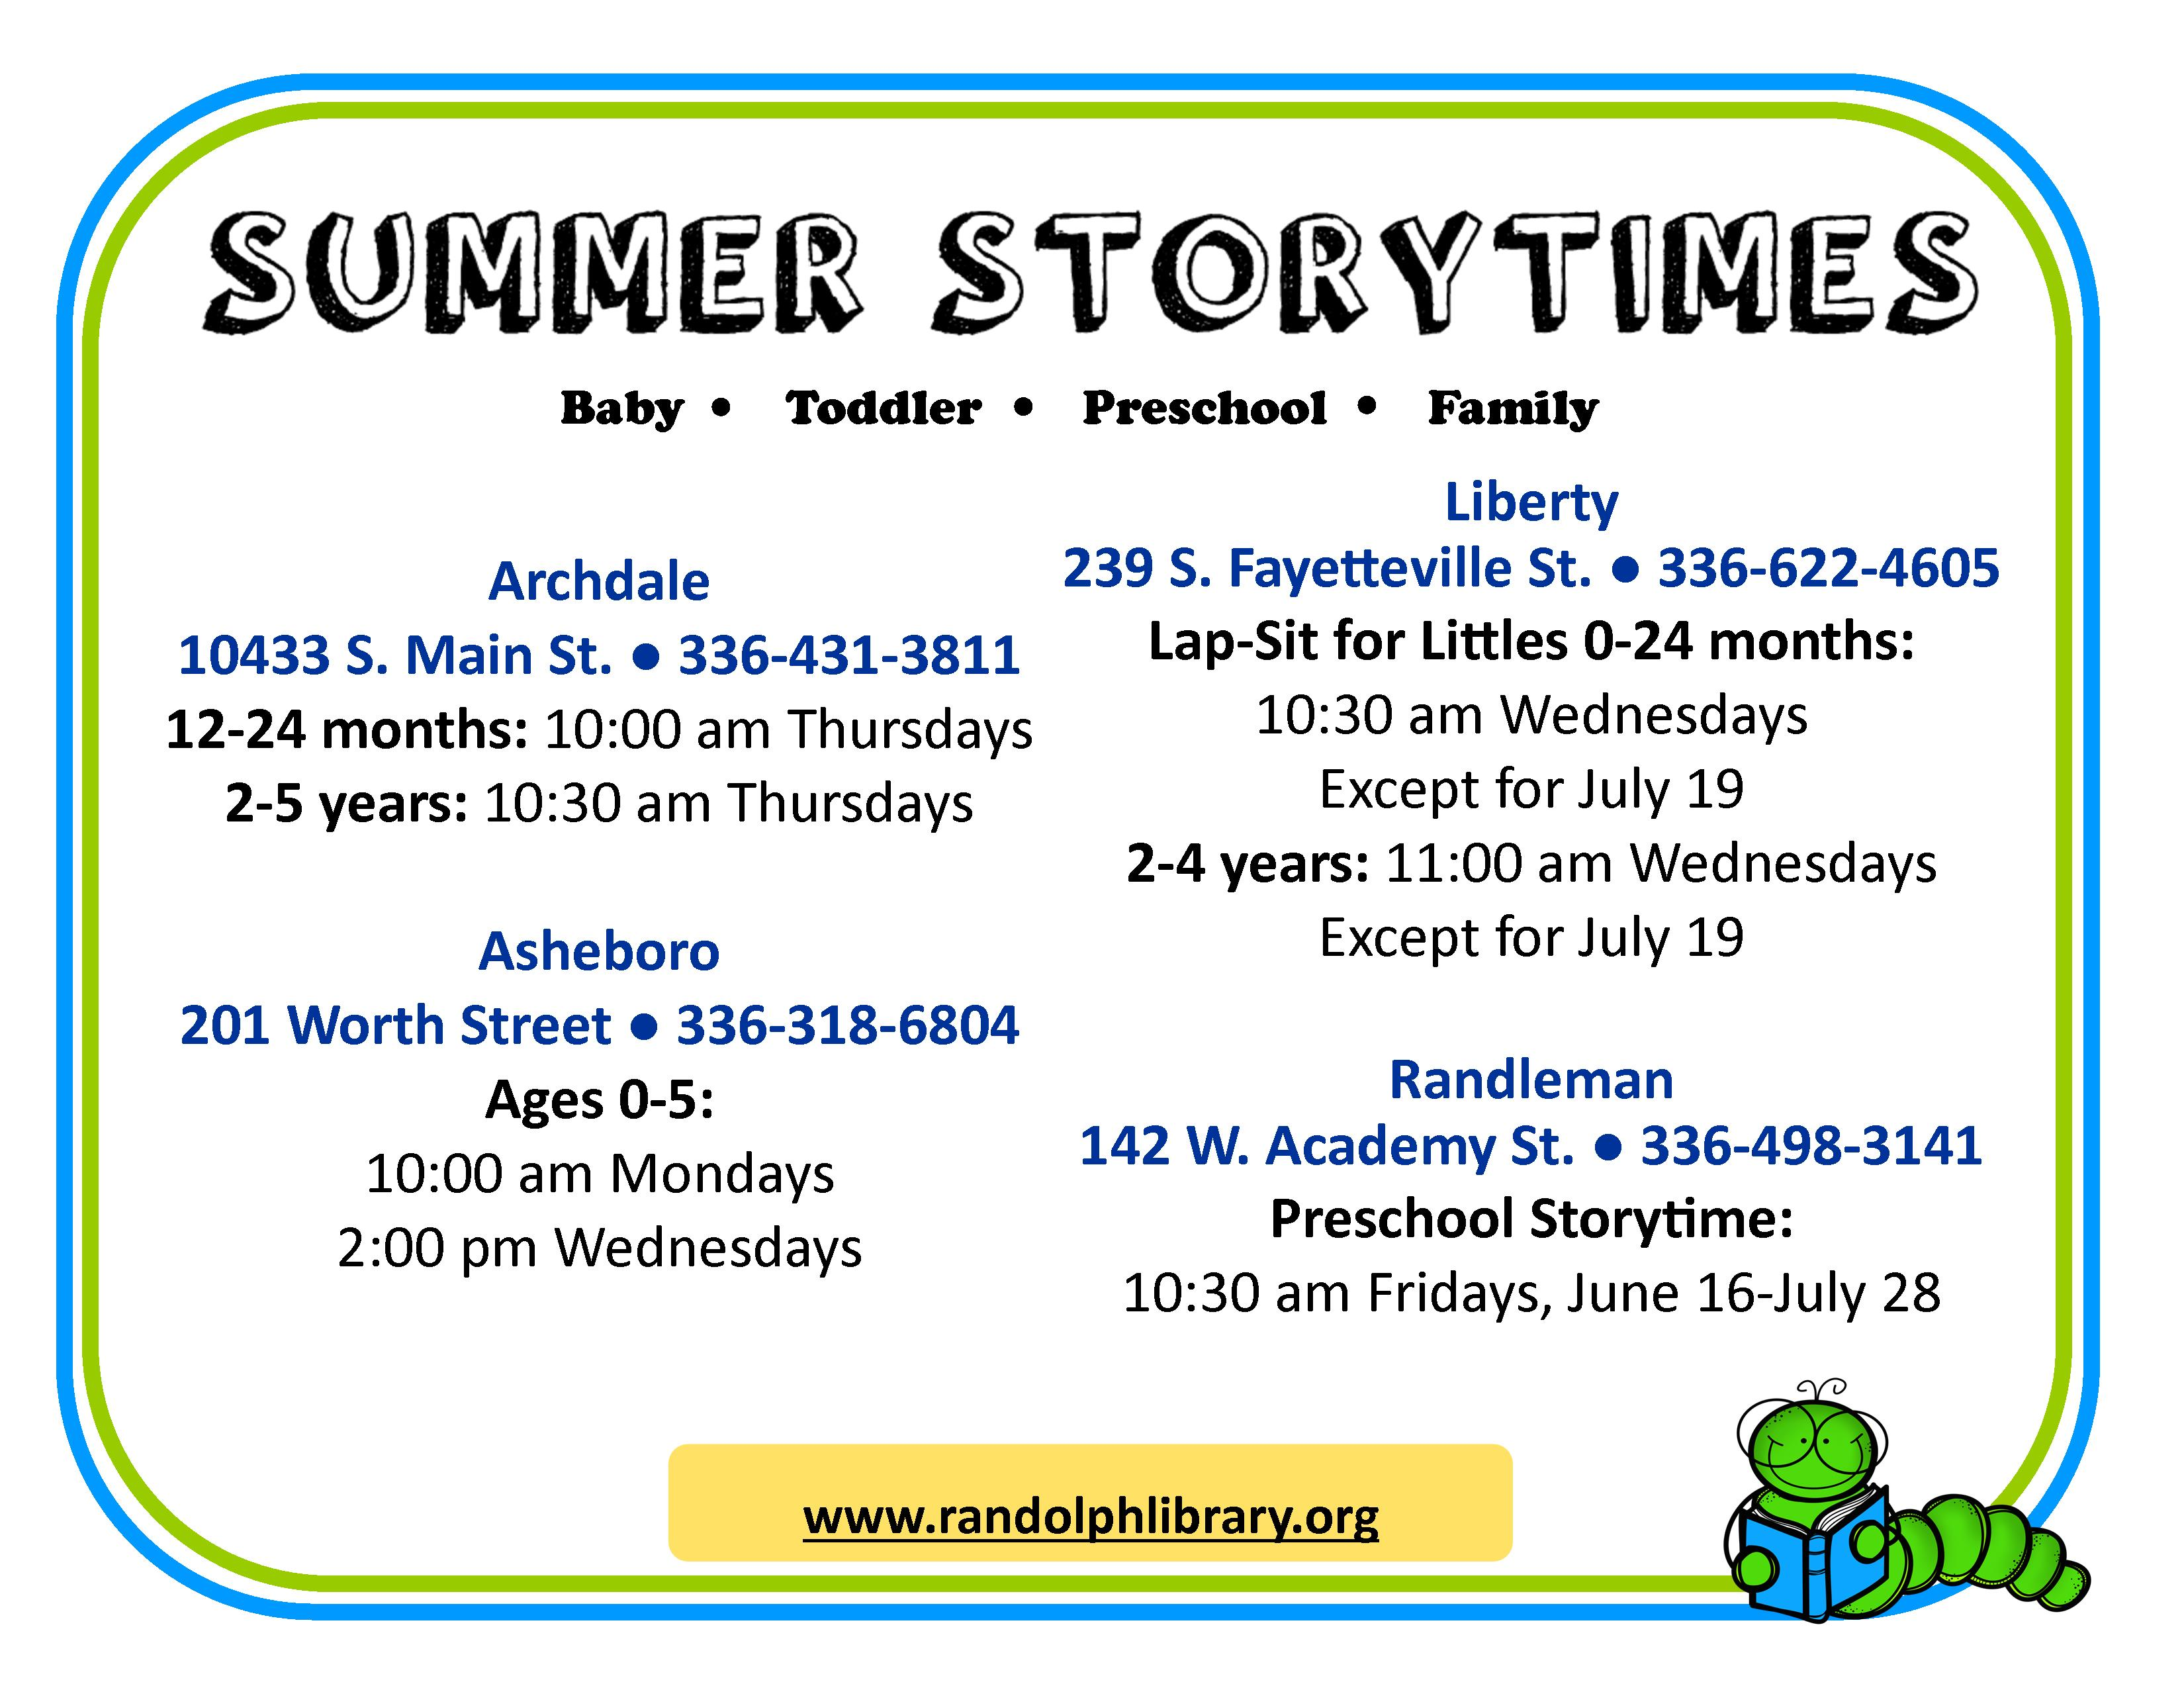 New Storytimes for Kids During the Summer!